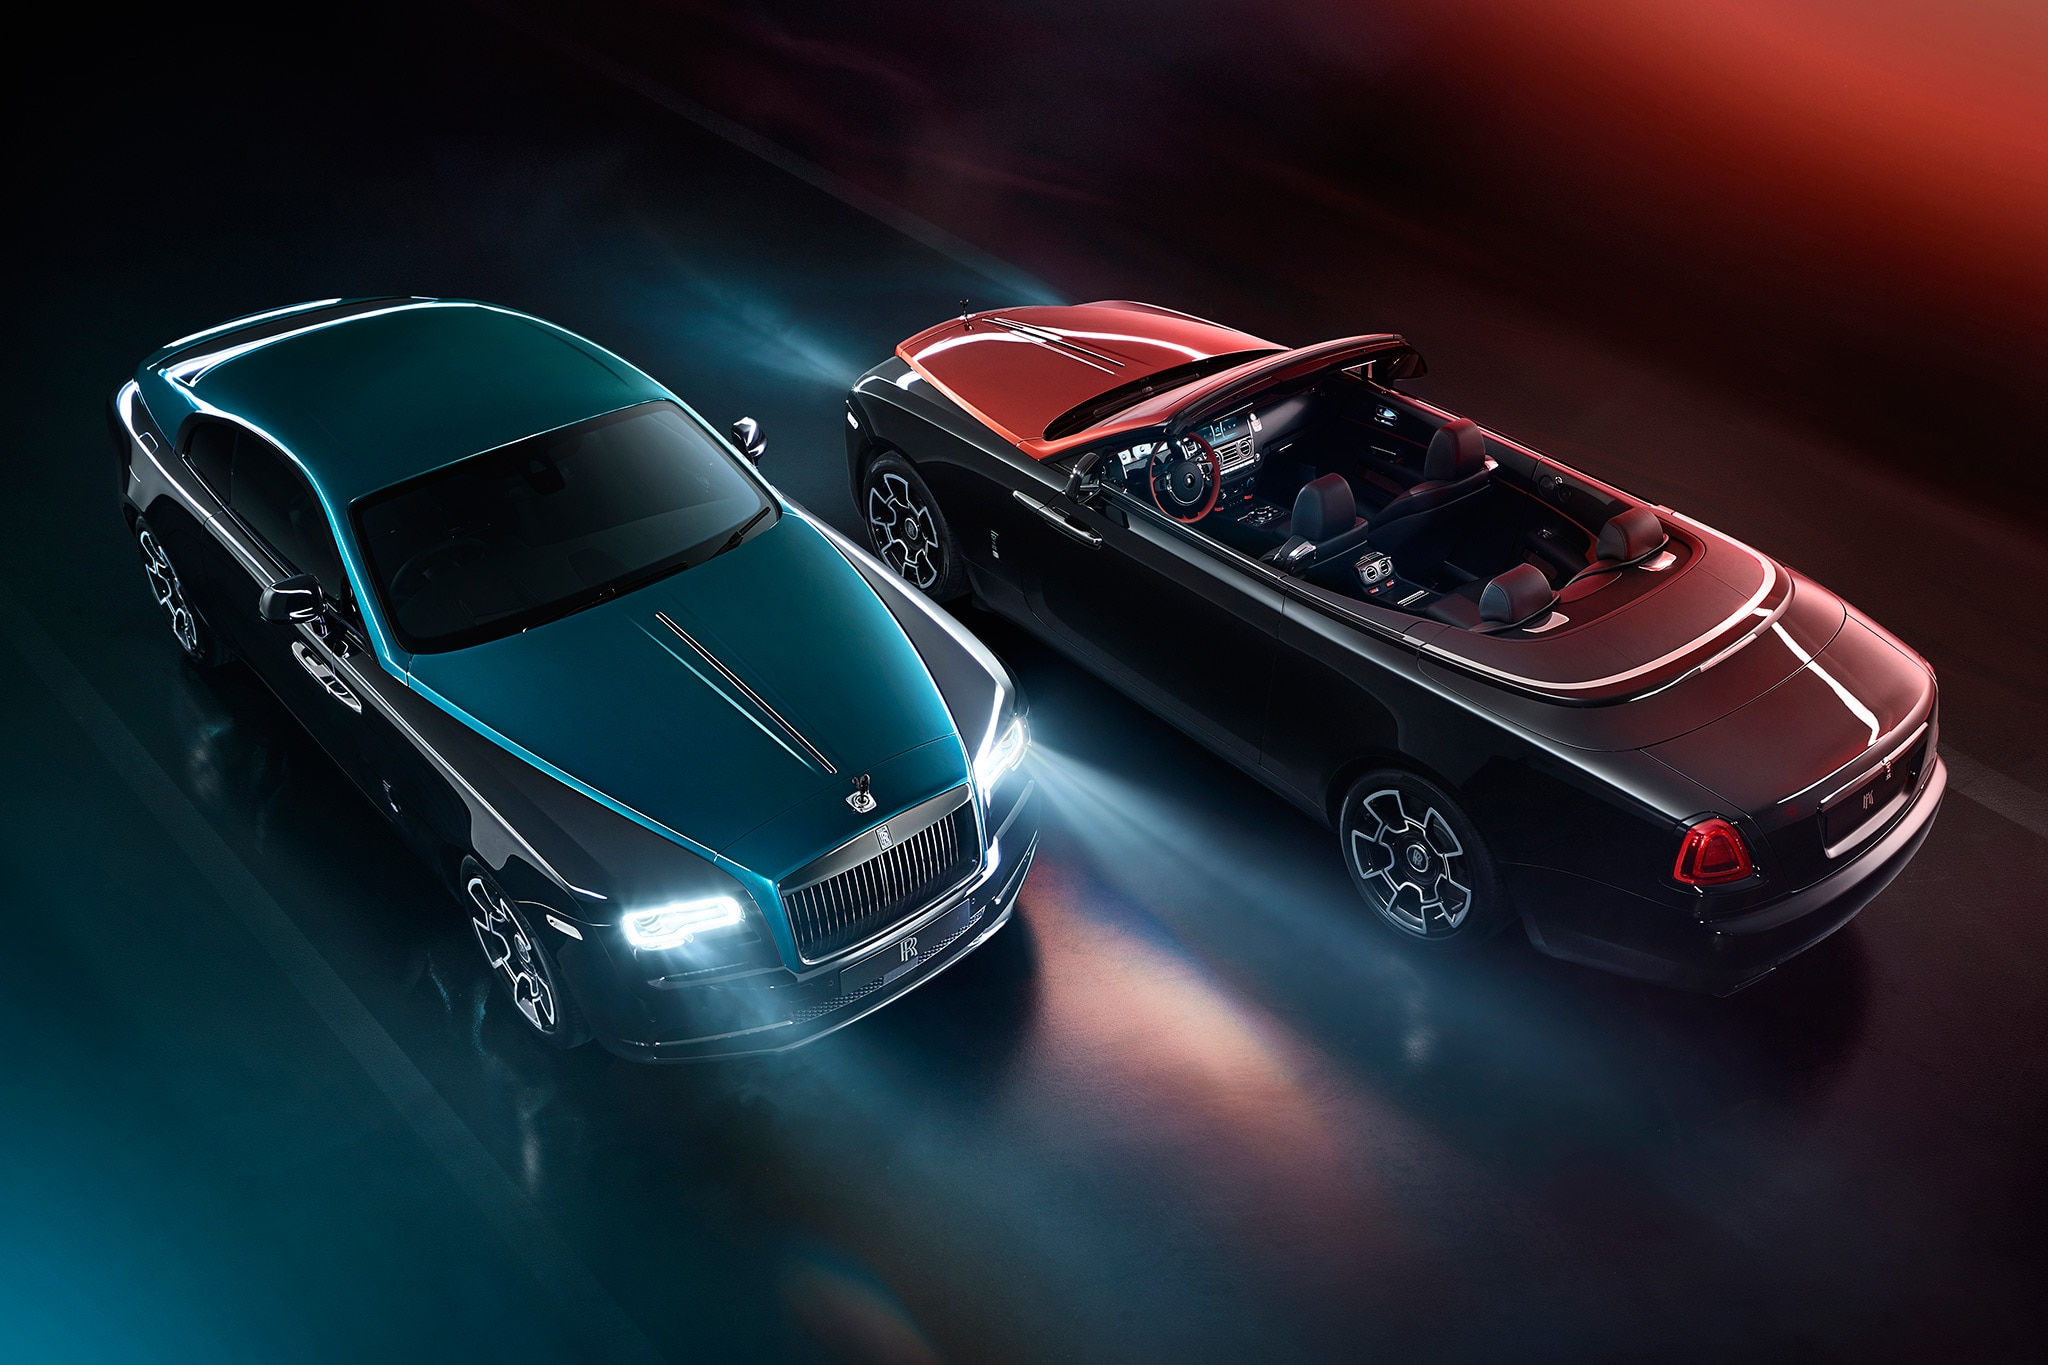 Rolls-Royce Wraith And Dawn Adamas Black Badge Collection Revealed